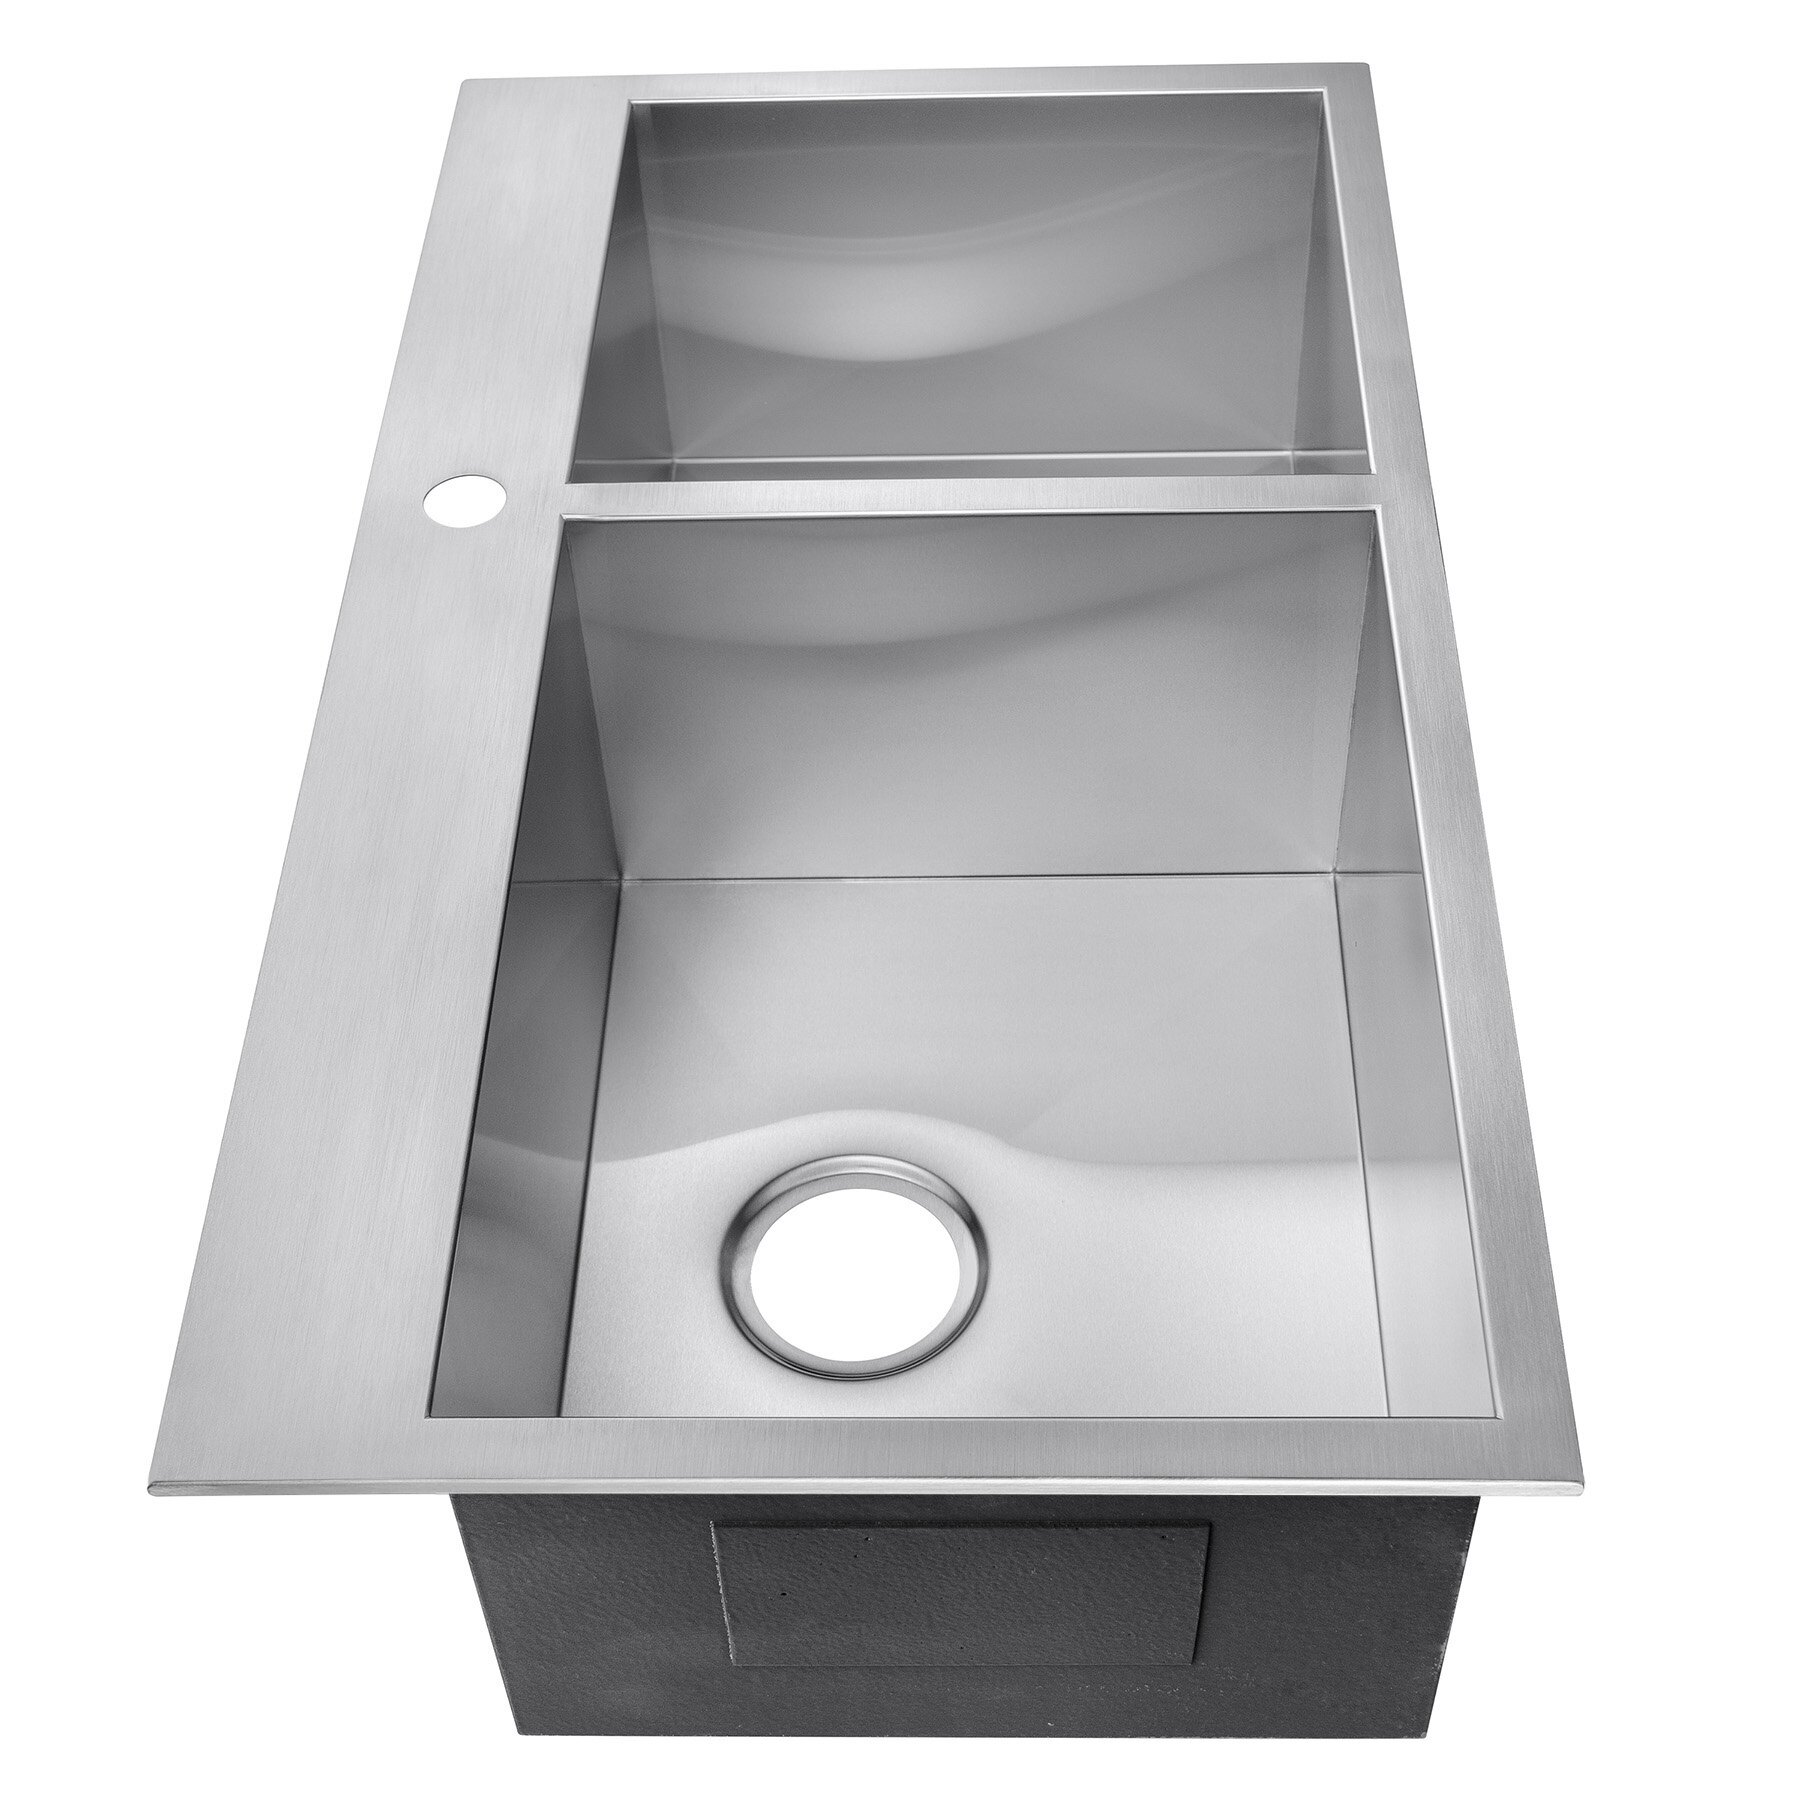 Akdy 33 X 22 X 9 Double Basin Top Mount Stainless Steel Kitchen Sink Tray Drain